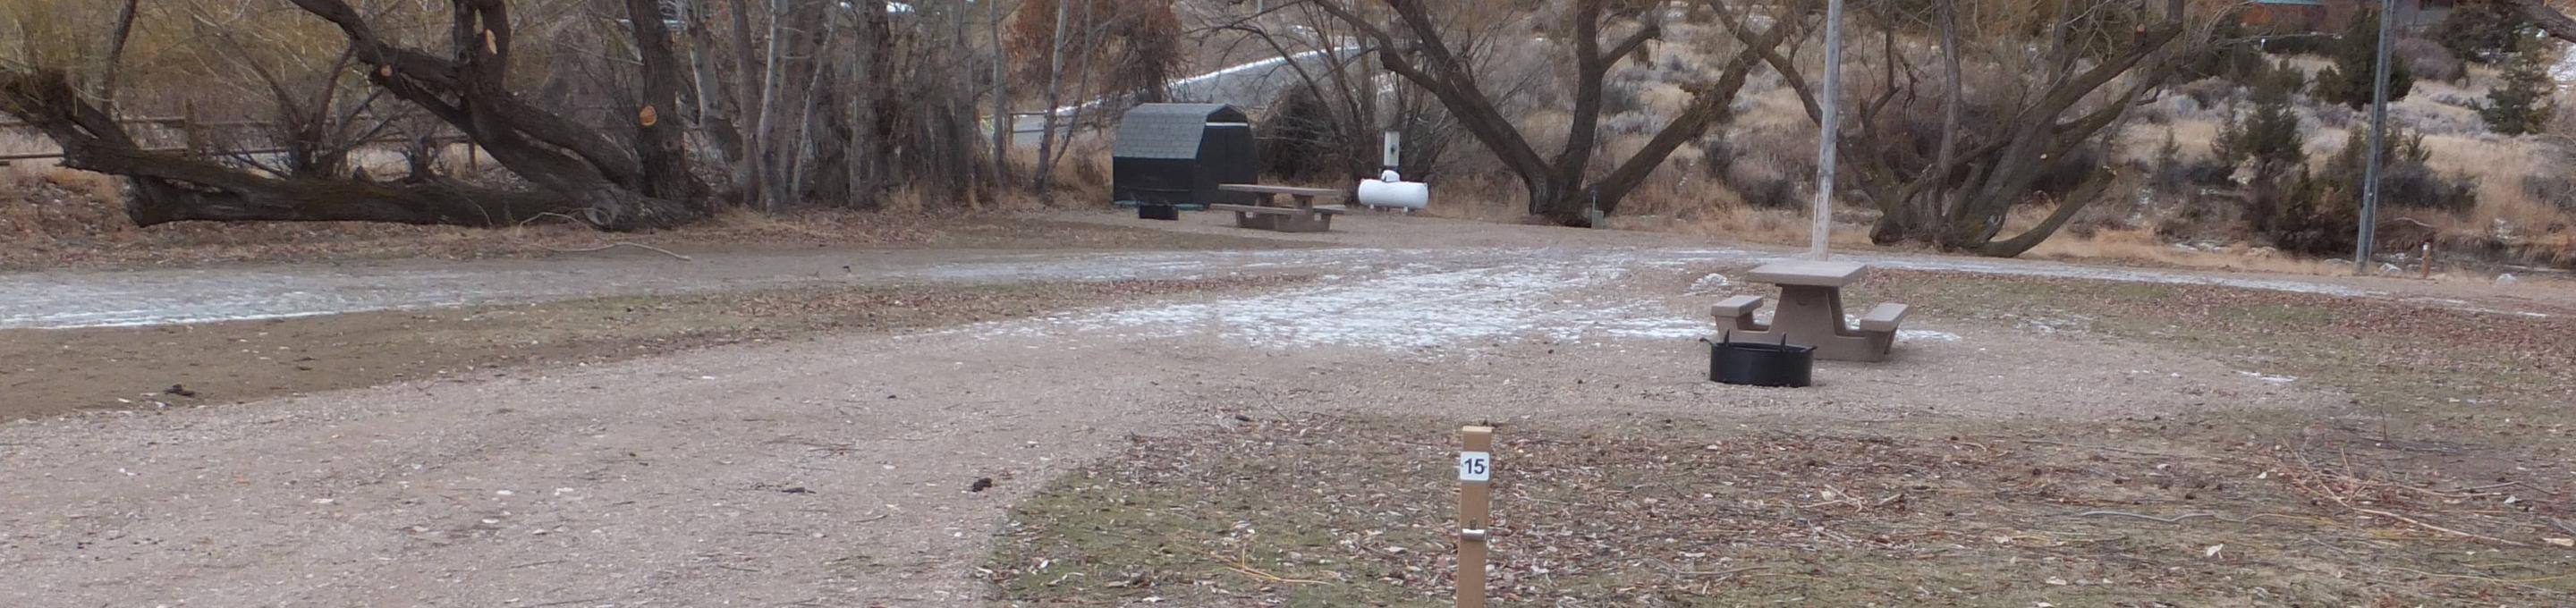 Jo Bonner Campground - Site 15